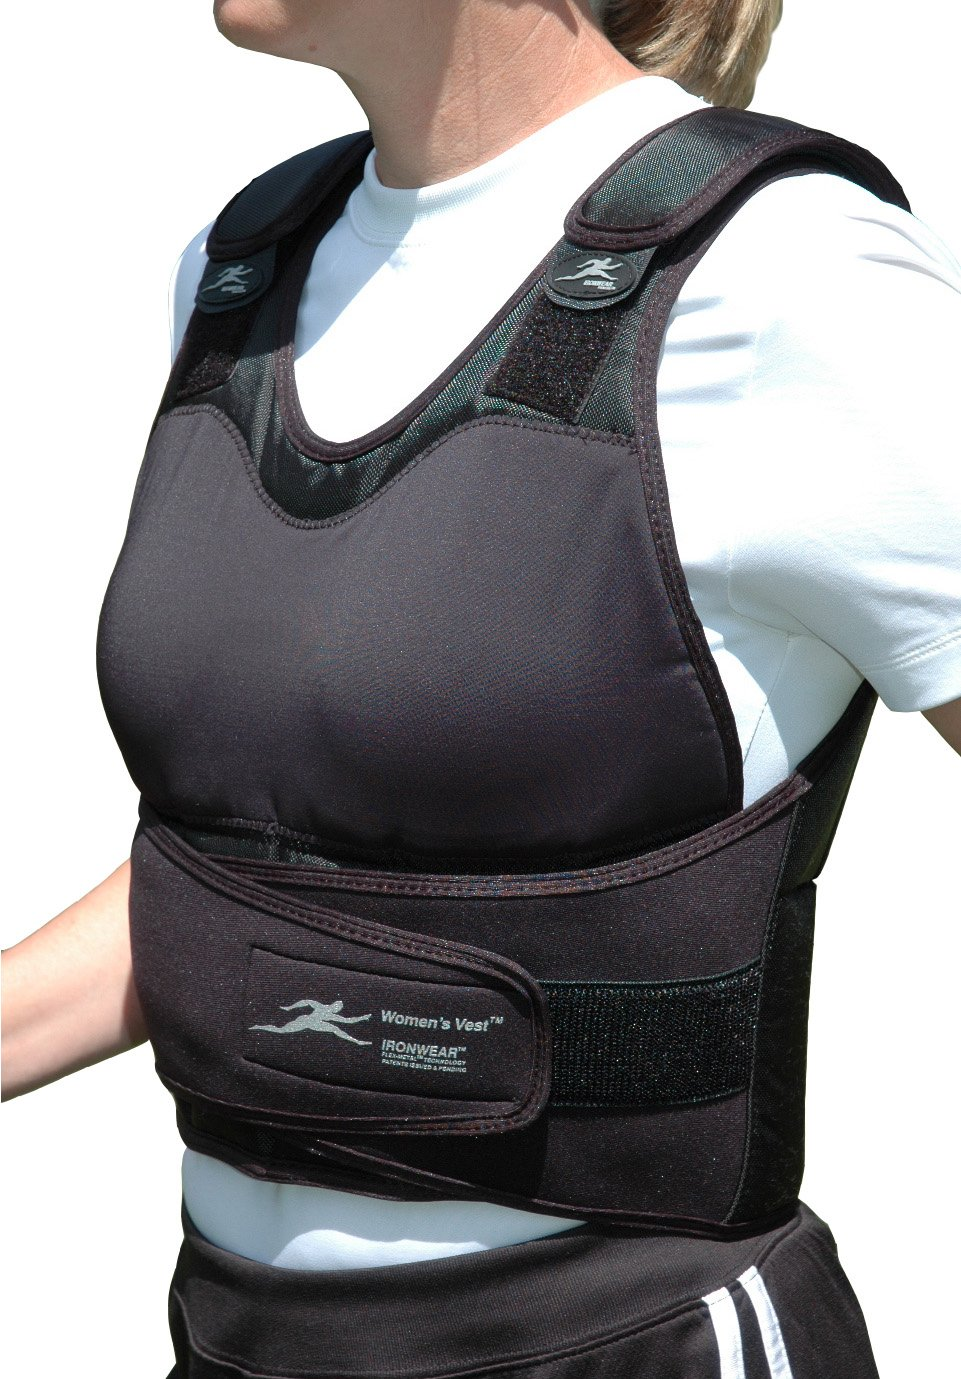 Women's Vest (Adjustable Height) Supplied At 11lbs Ironwear Fitness wv1121